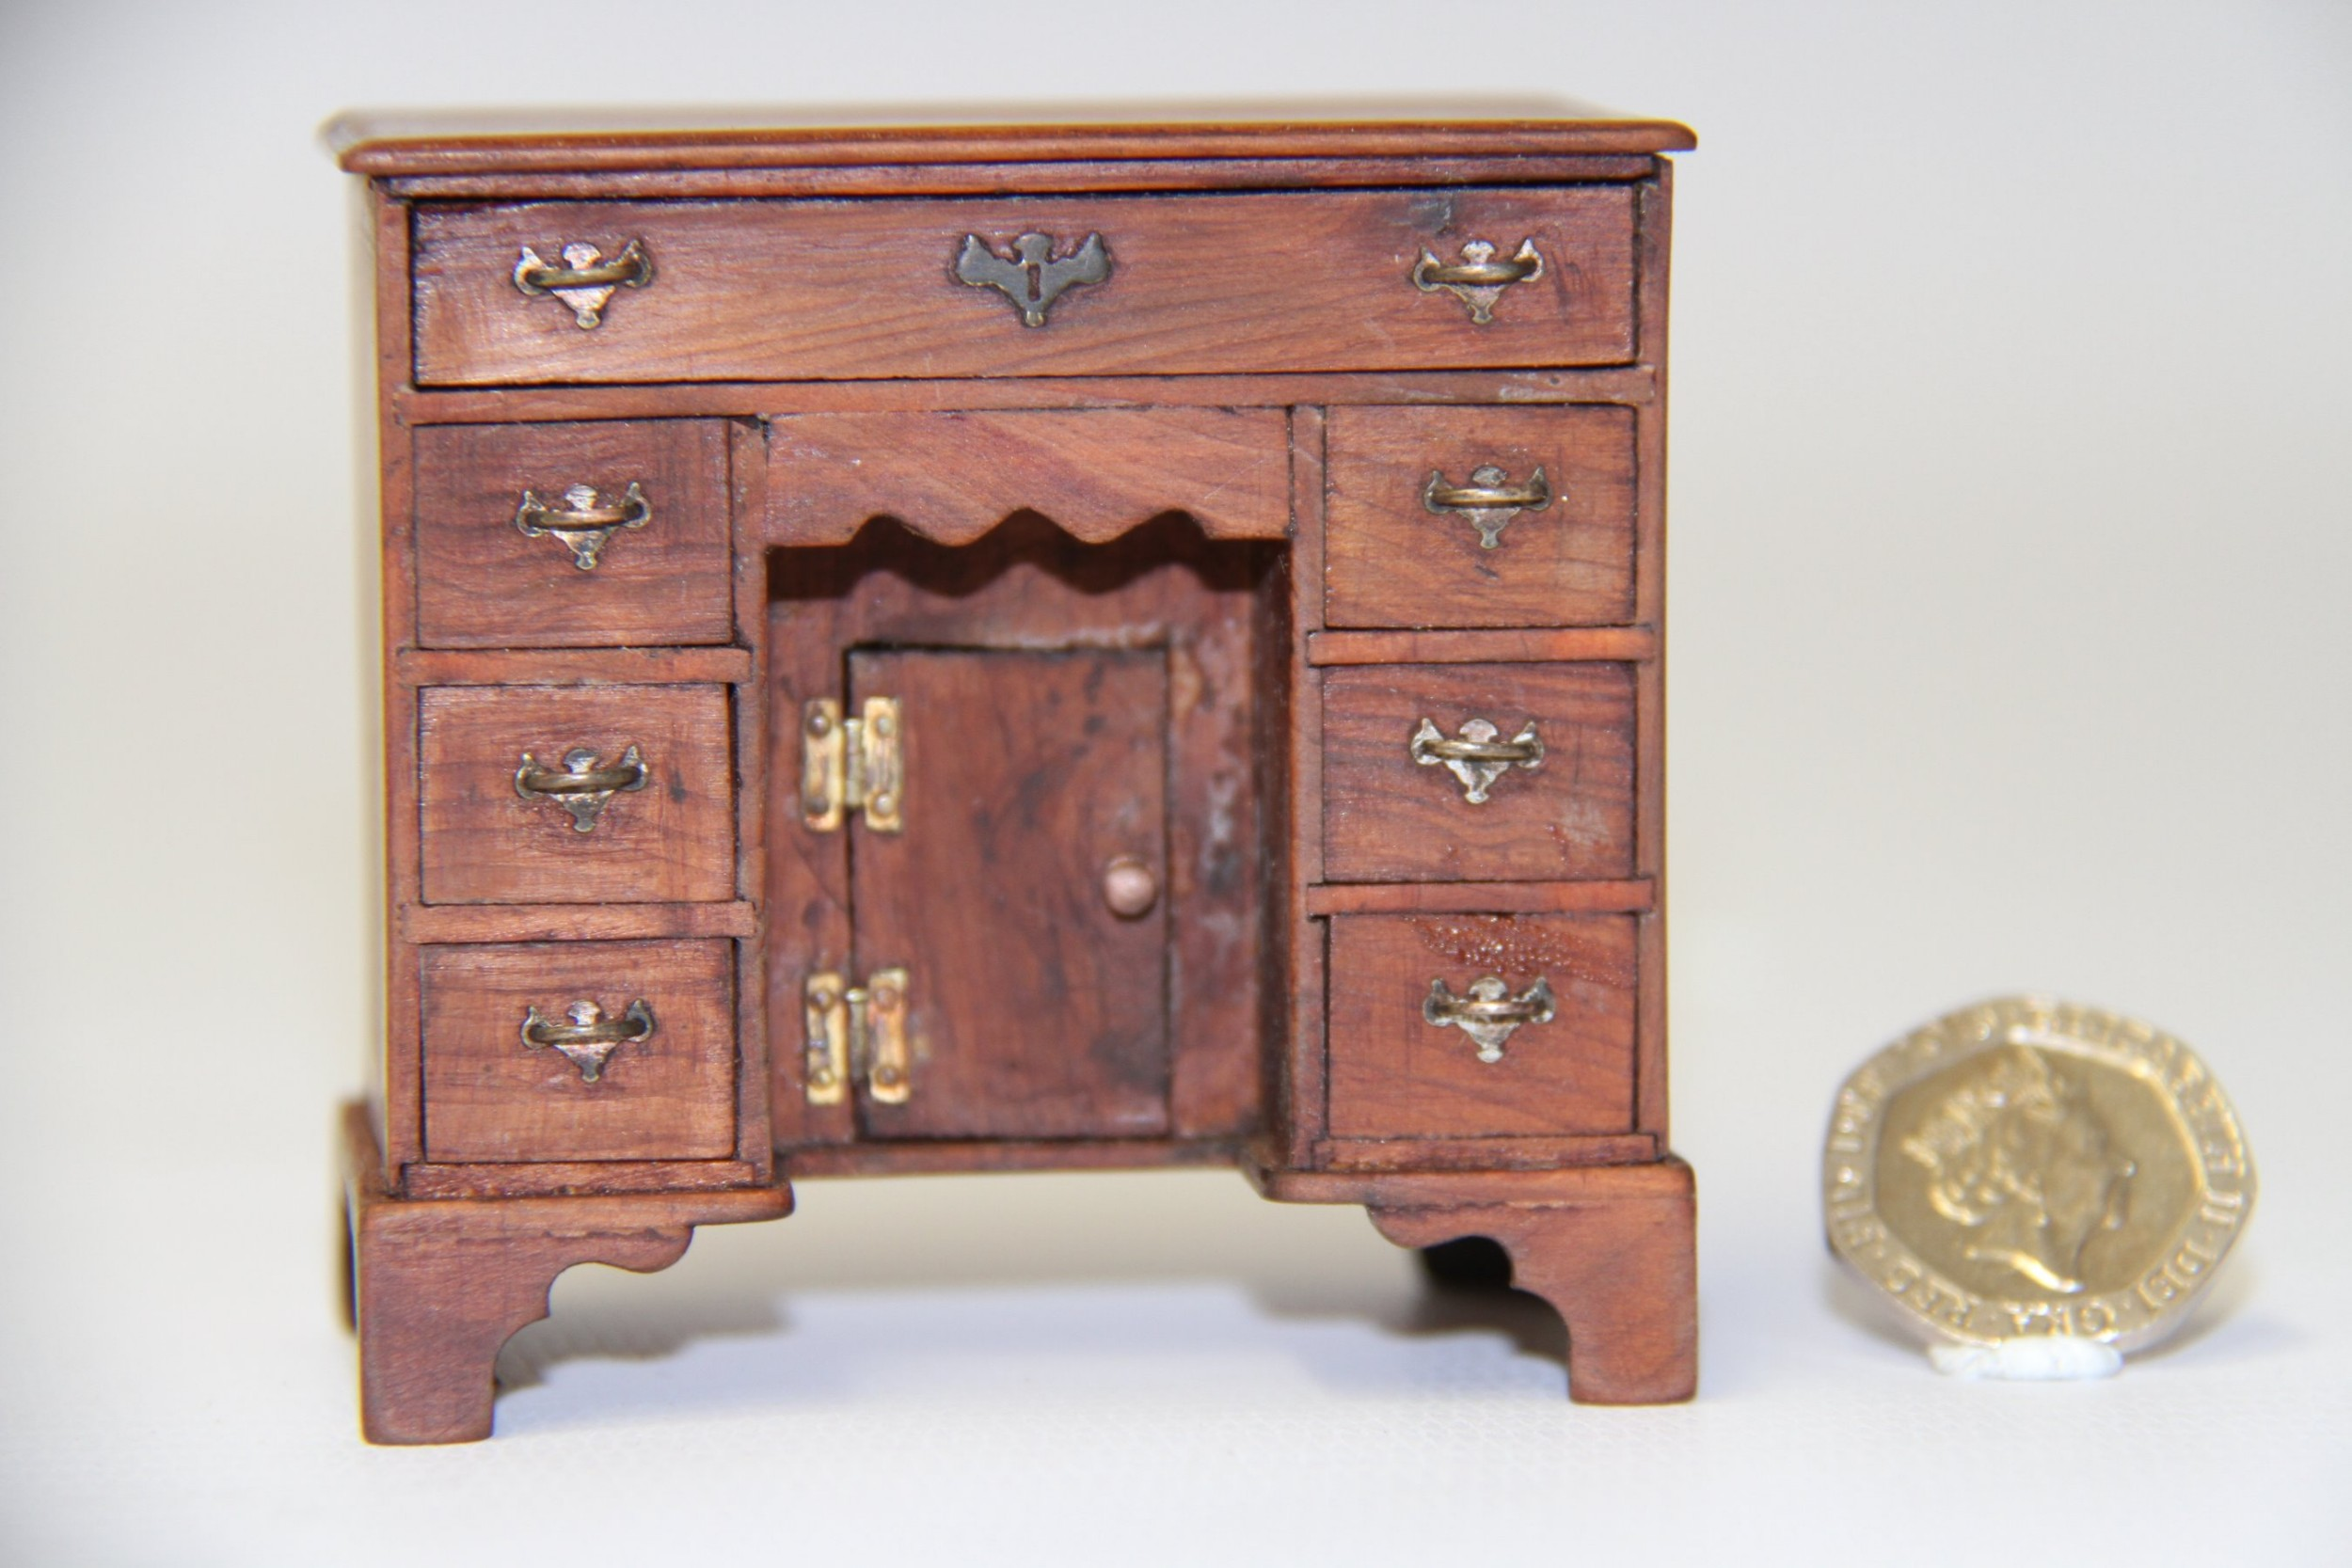 a miniature small scale model of a yew wood kneehole desk